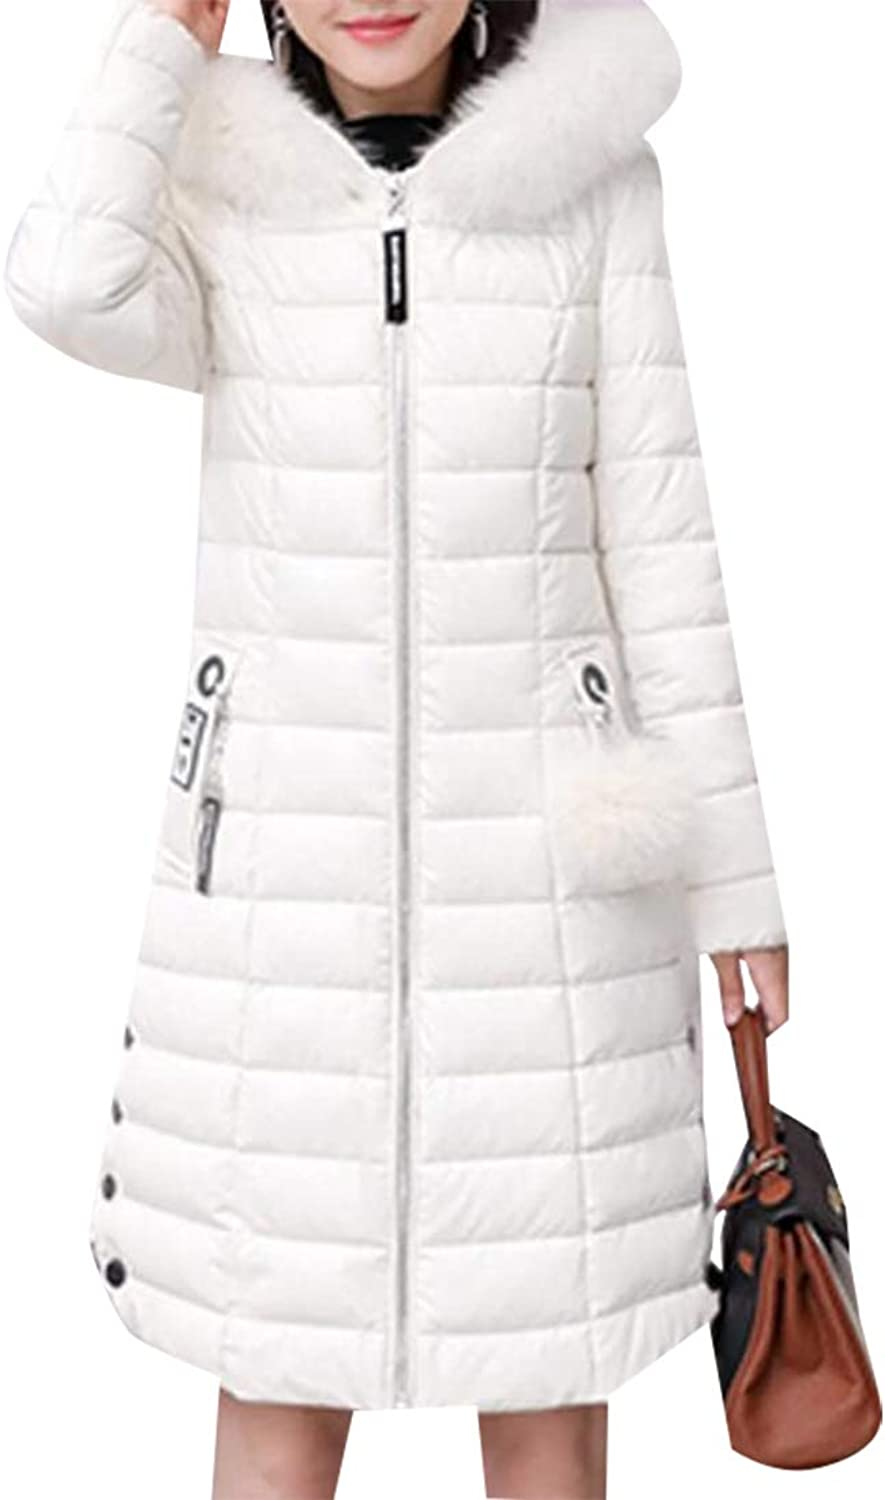 Esast Women's Thicken Hooded Faux Fur Lined Warm Parkas Jacket Coats Outwear